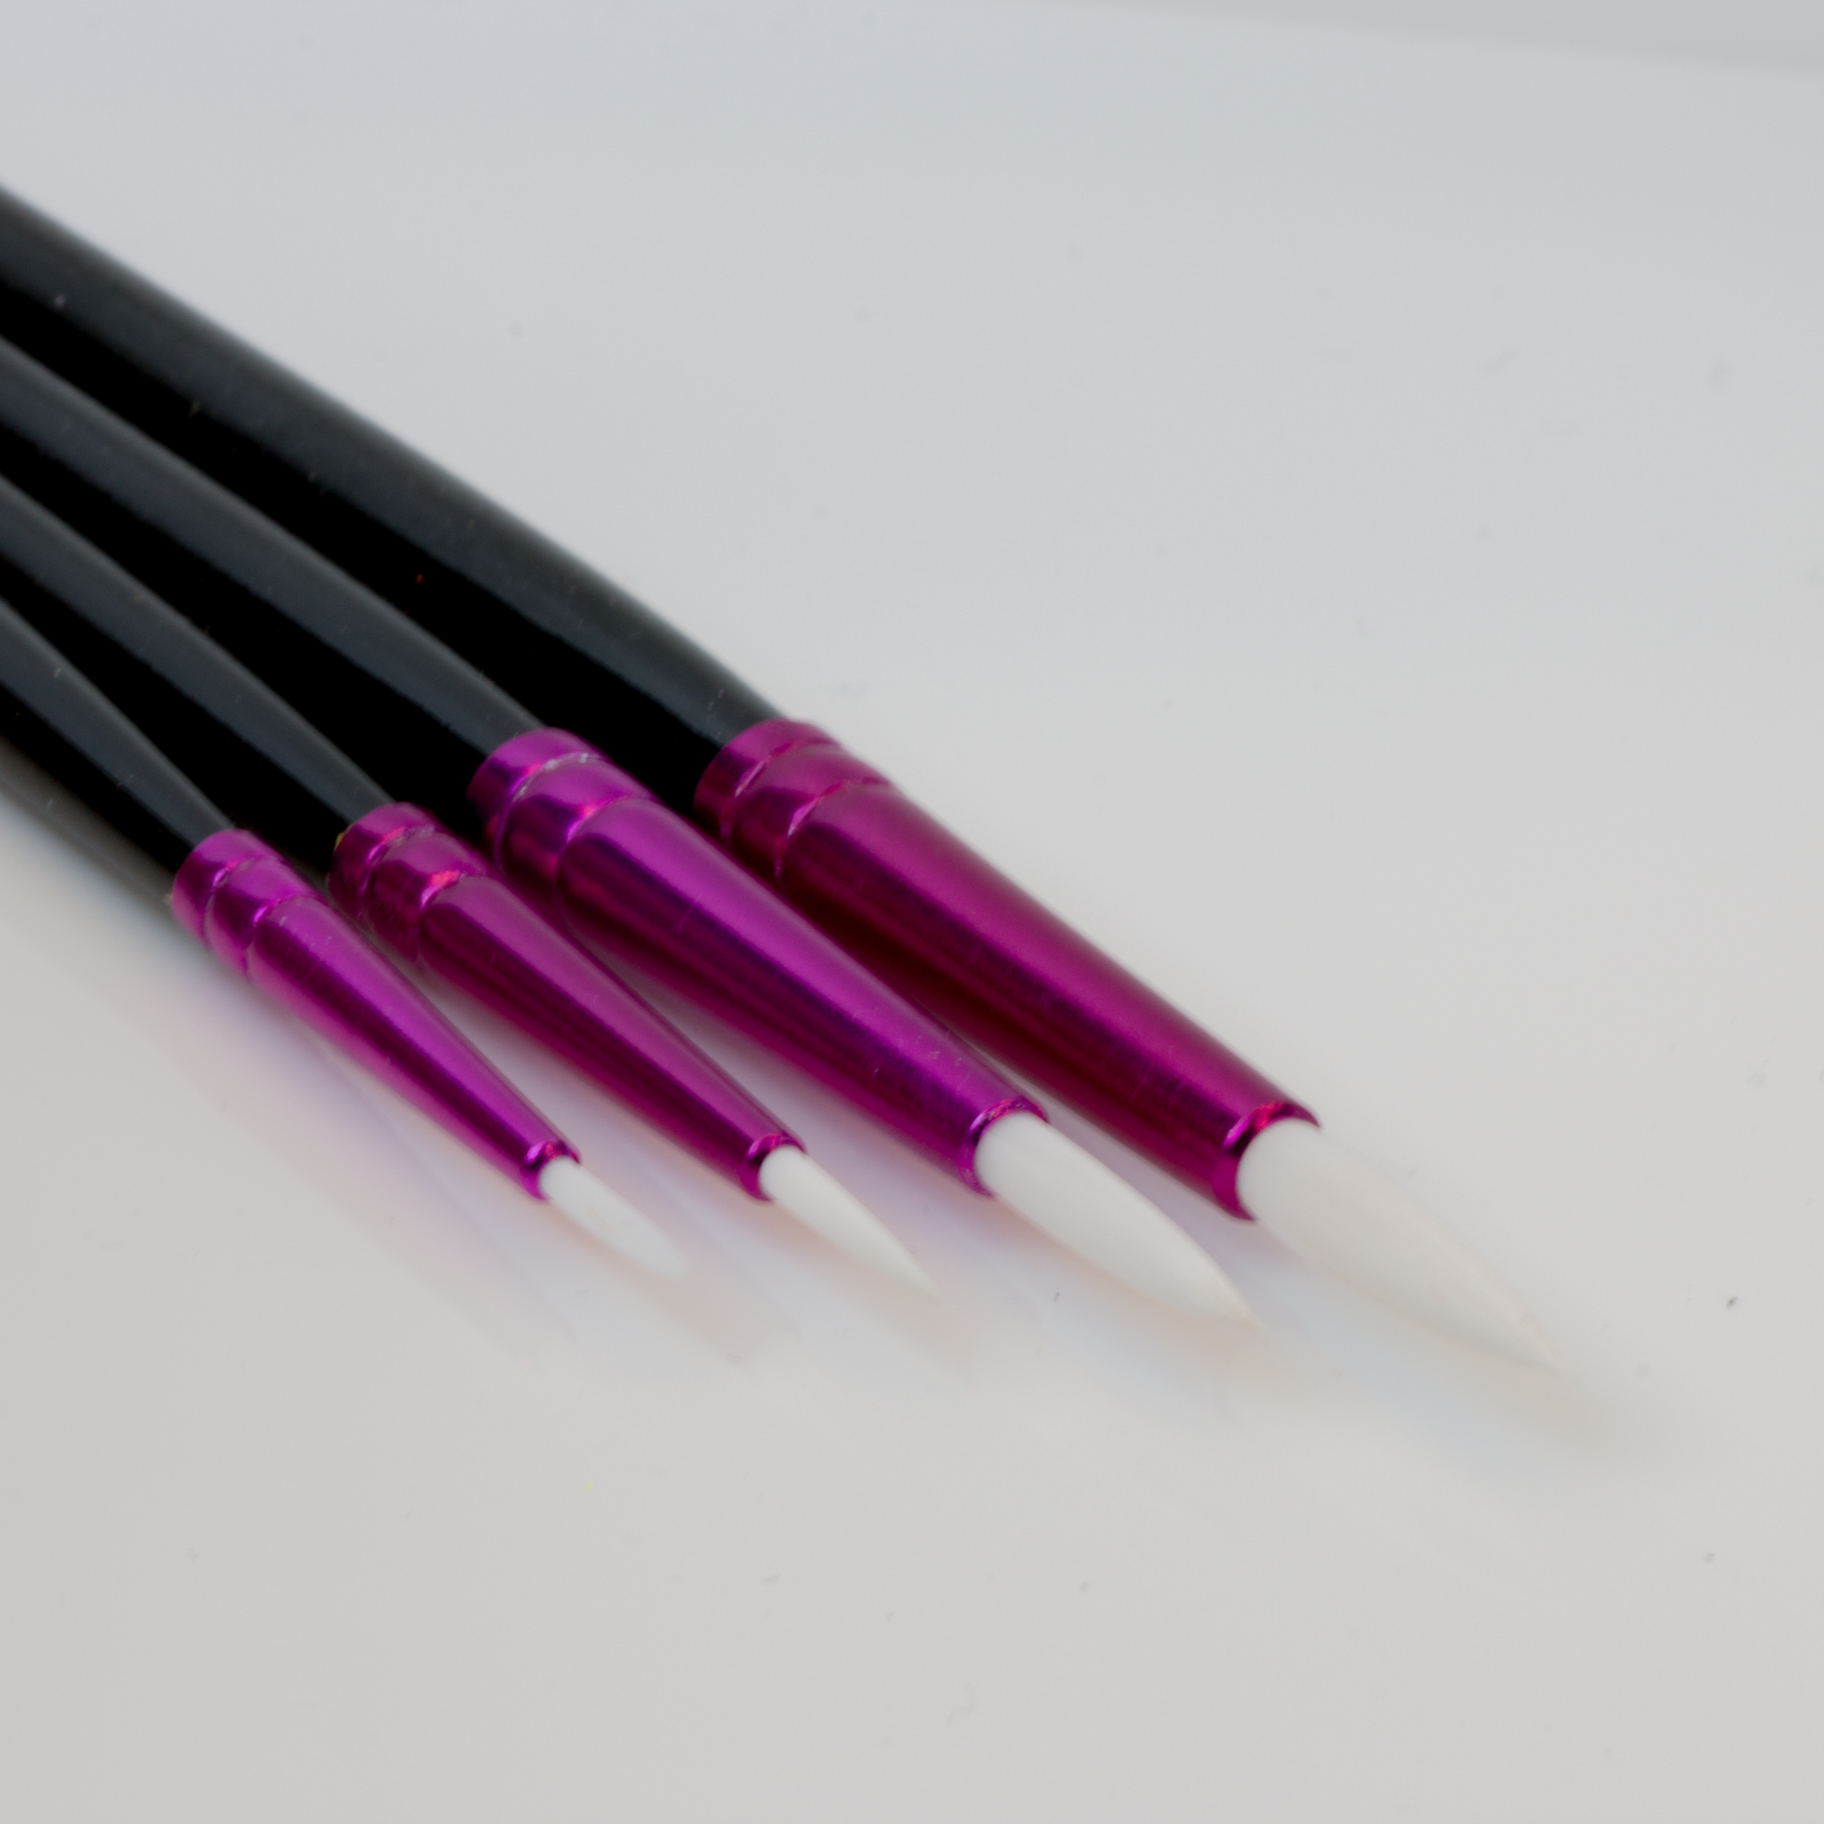 TaklonBrushes